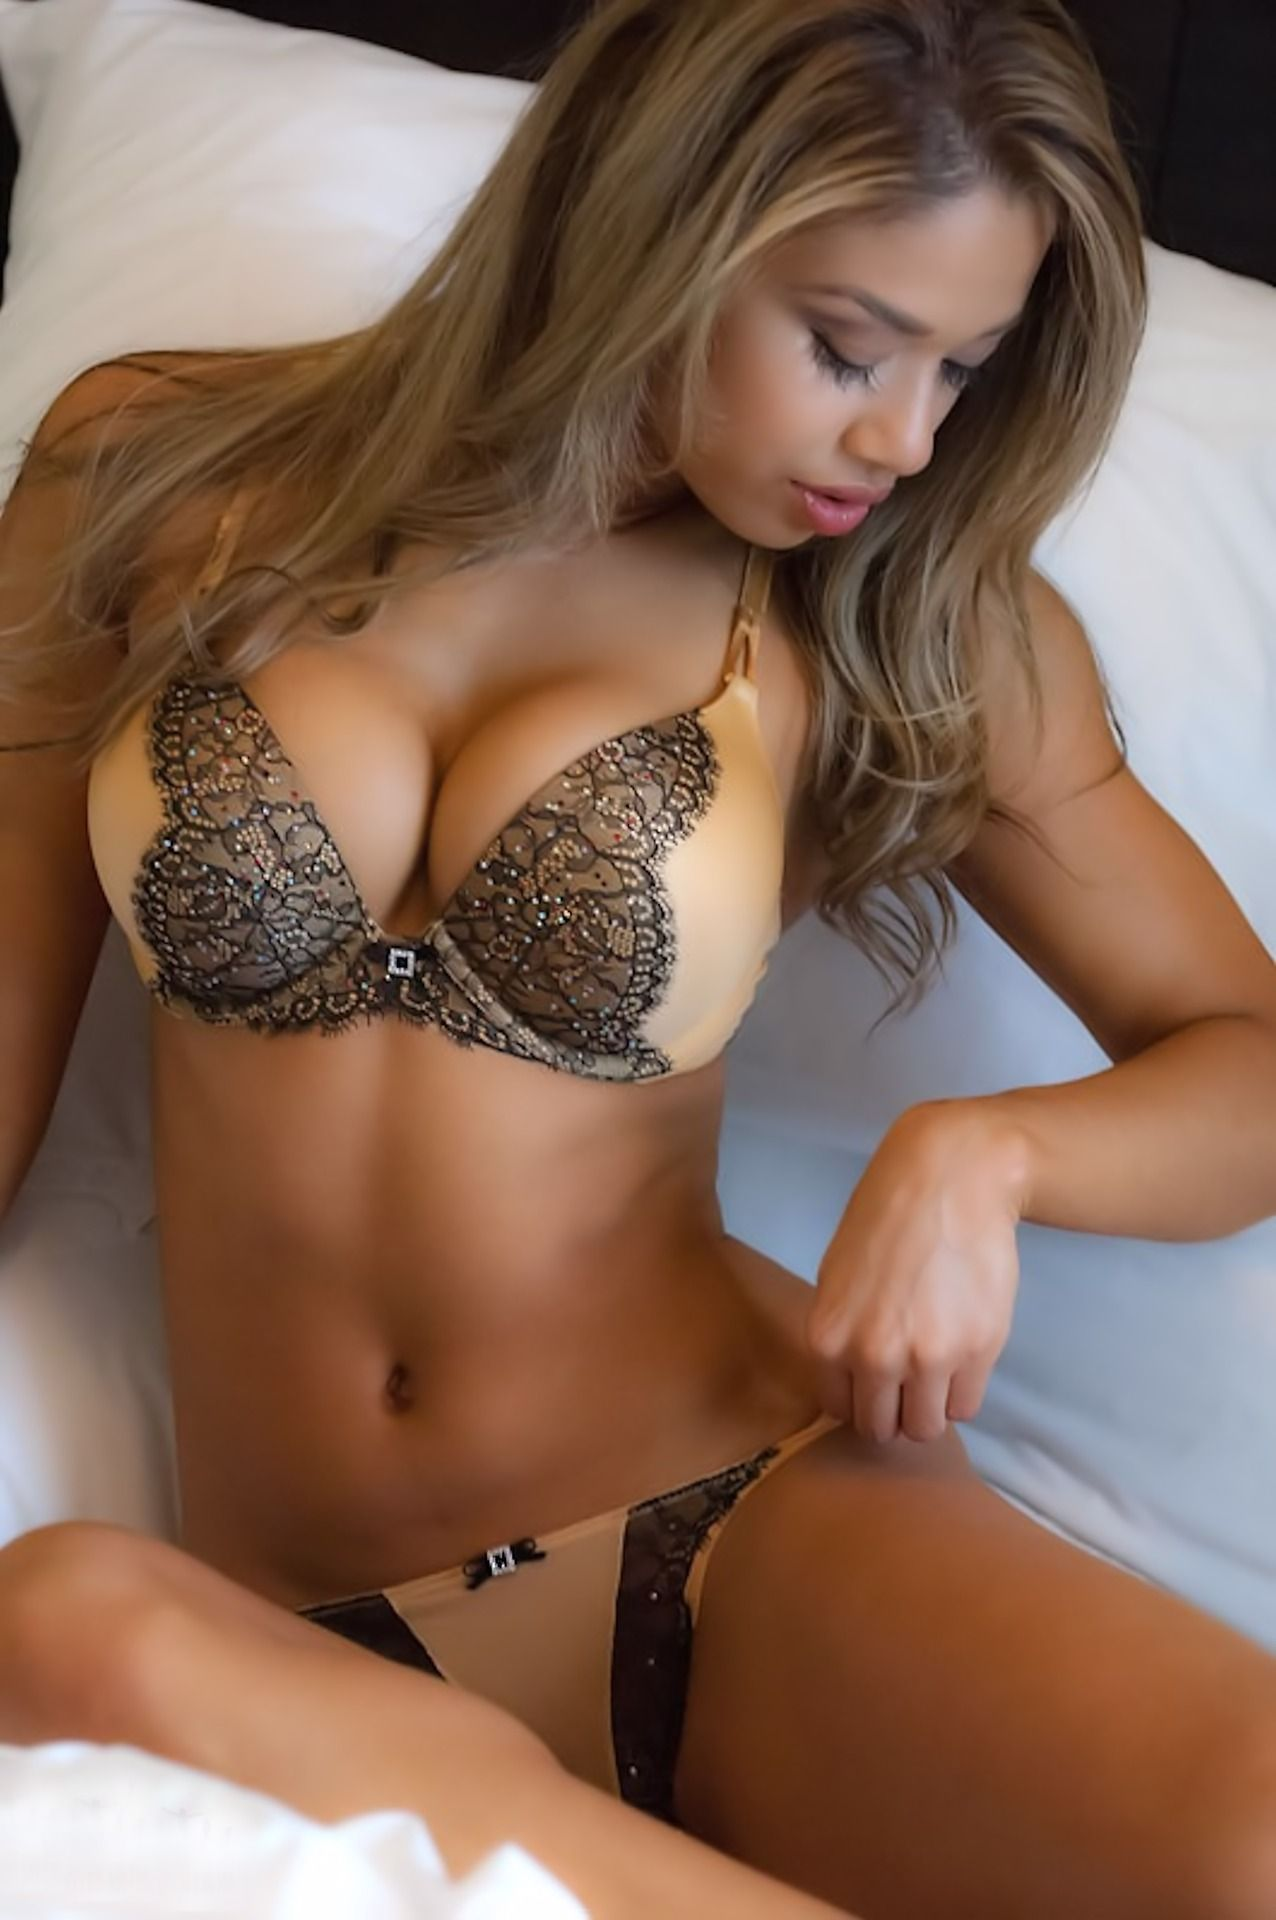 Latinas Sexy Teen In Lingerie Pictures